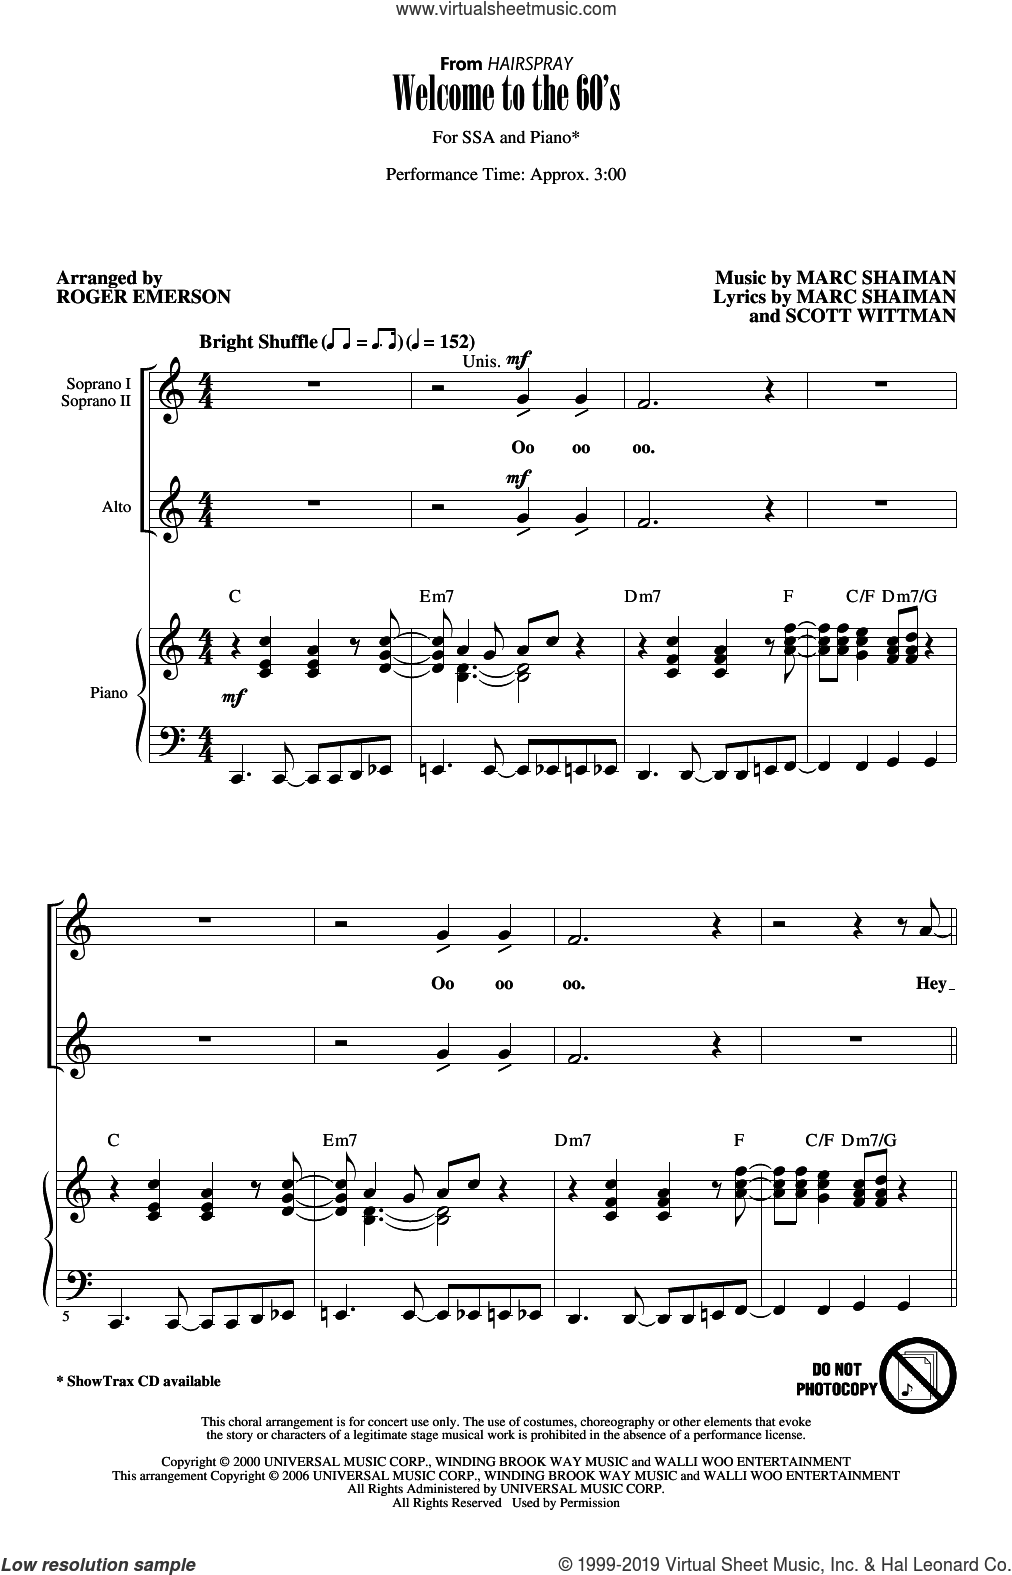 Welcome To The 60's (from Hairspray) (arr. Roger Emerson) sheet music for choir (SSA: soprano, alto) by Marc Shaiman, Roger Emerson, Marc Shaiman and Scott Wittman and Scott Wittman, intermediate skill level